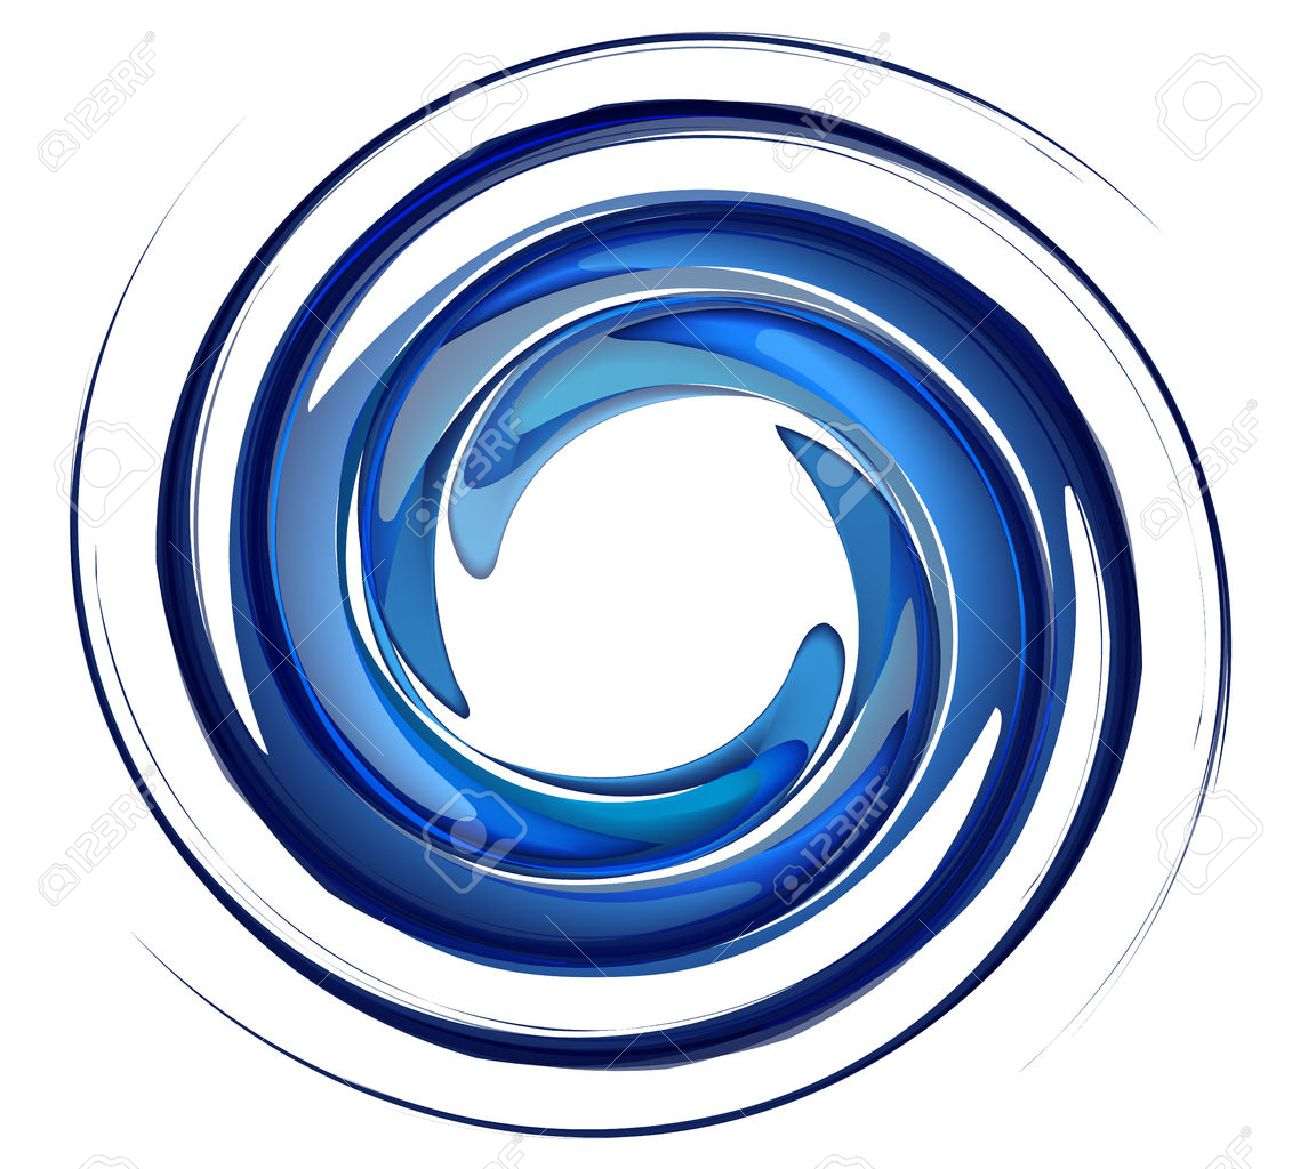 Isolated water vortex on white background, blue rotation water, whirlpool vector,water splash in round shape. - 25432876